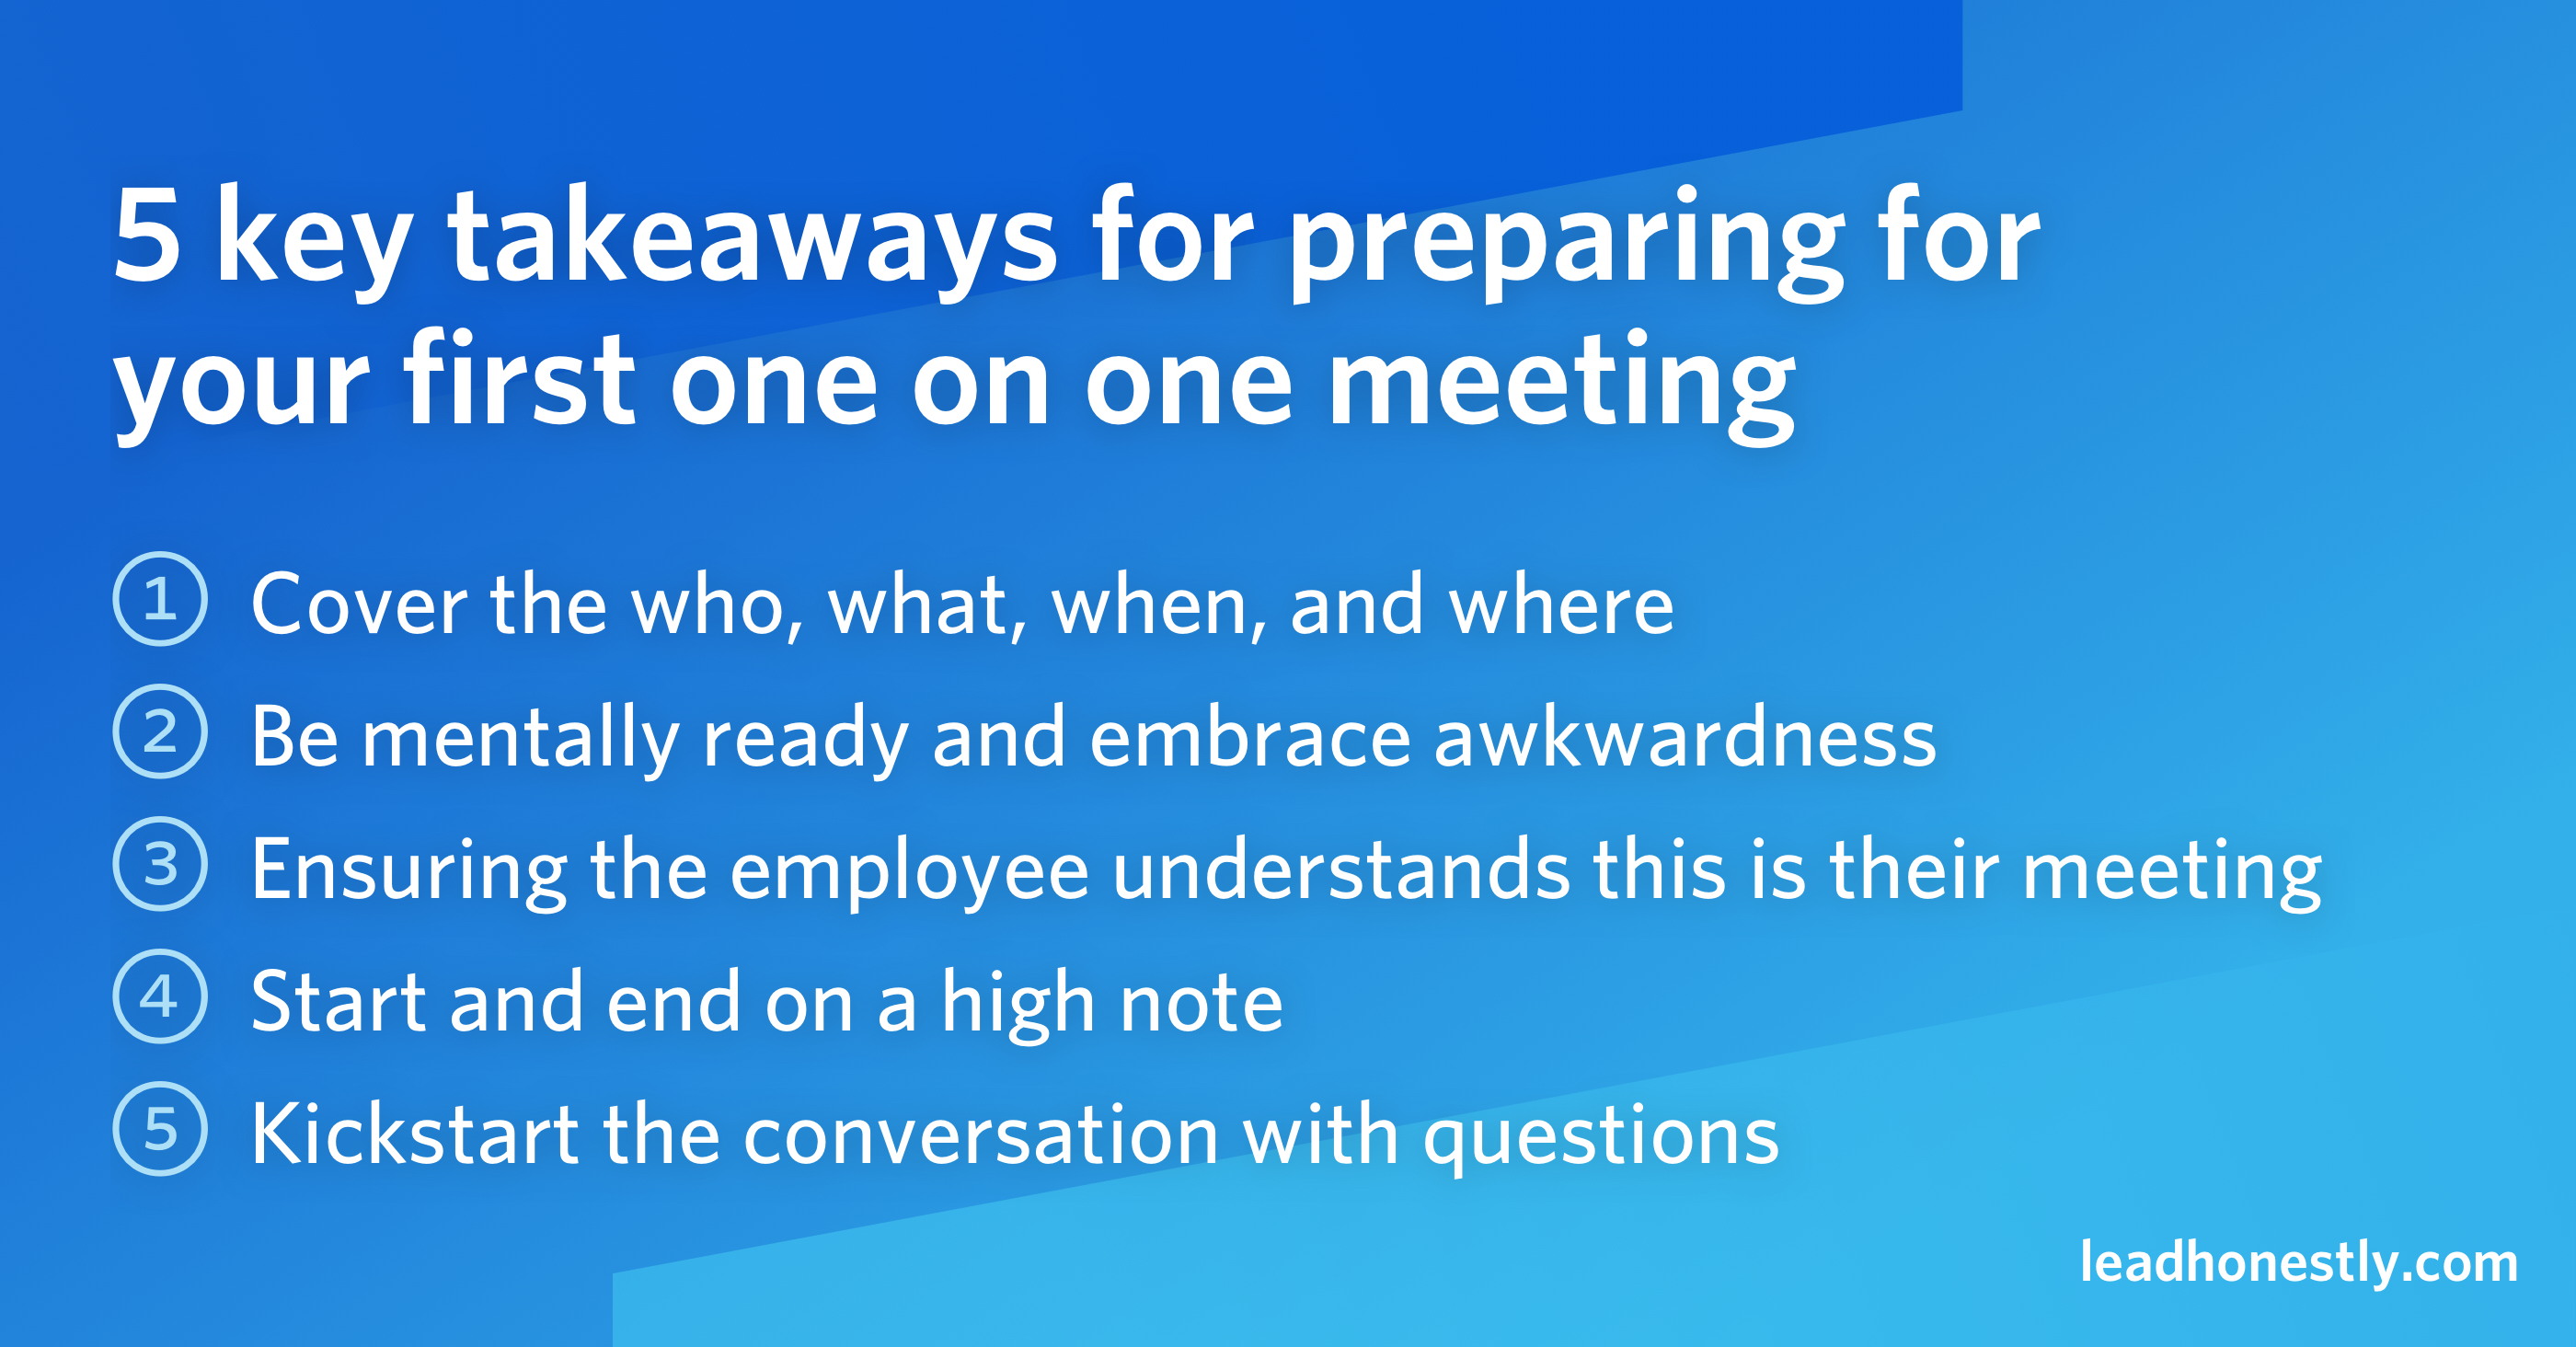 5 key takeaways for preparing for 